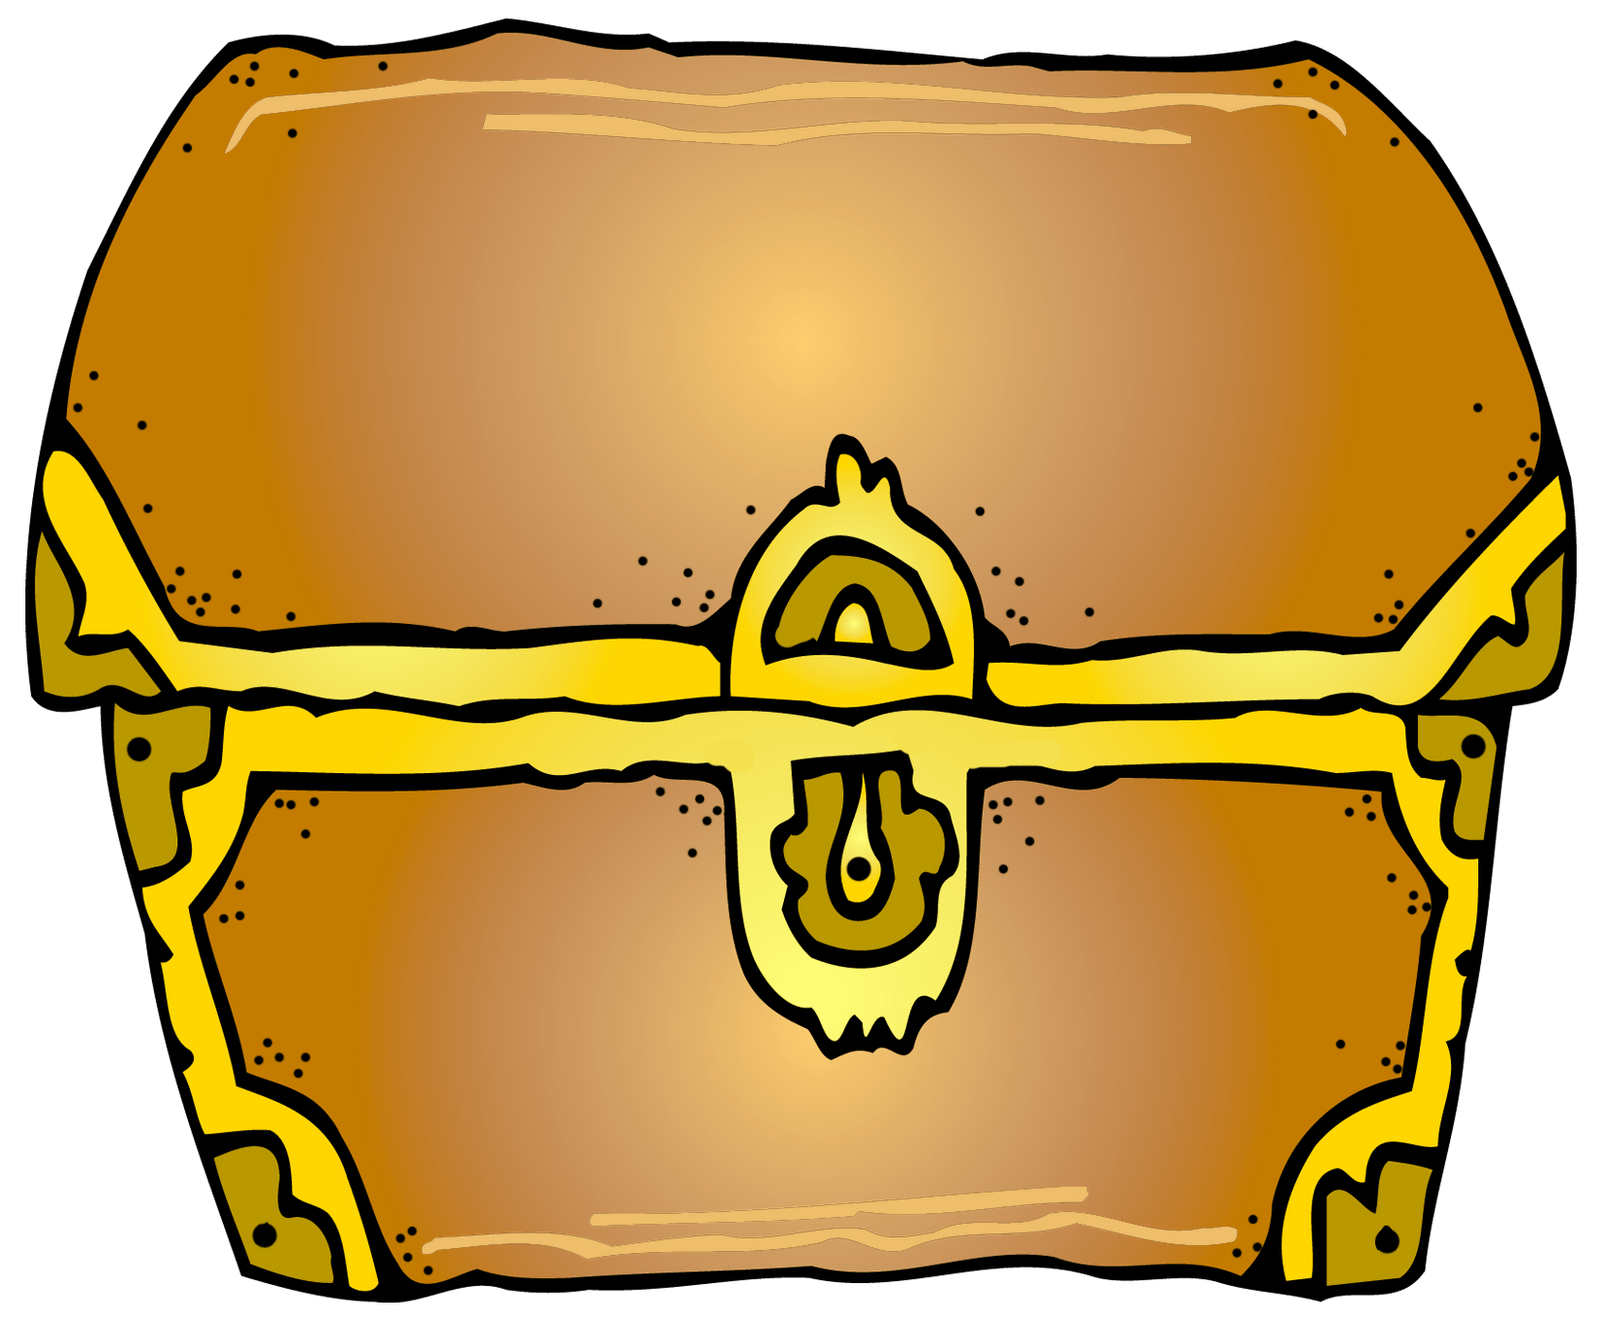 Treasure clipart treasure key. Box png ivoiregion chest